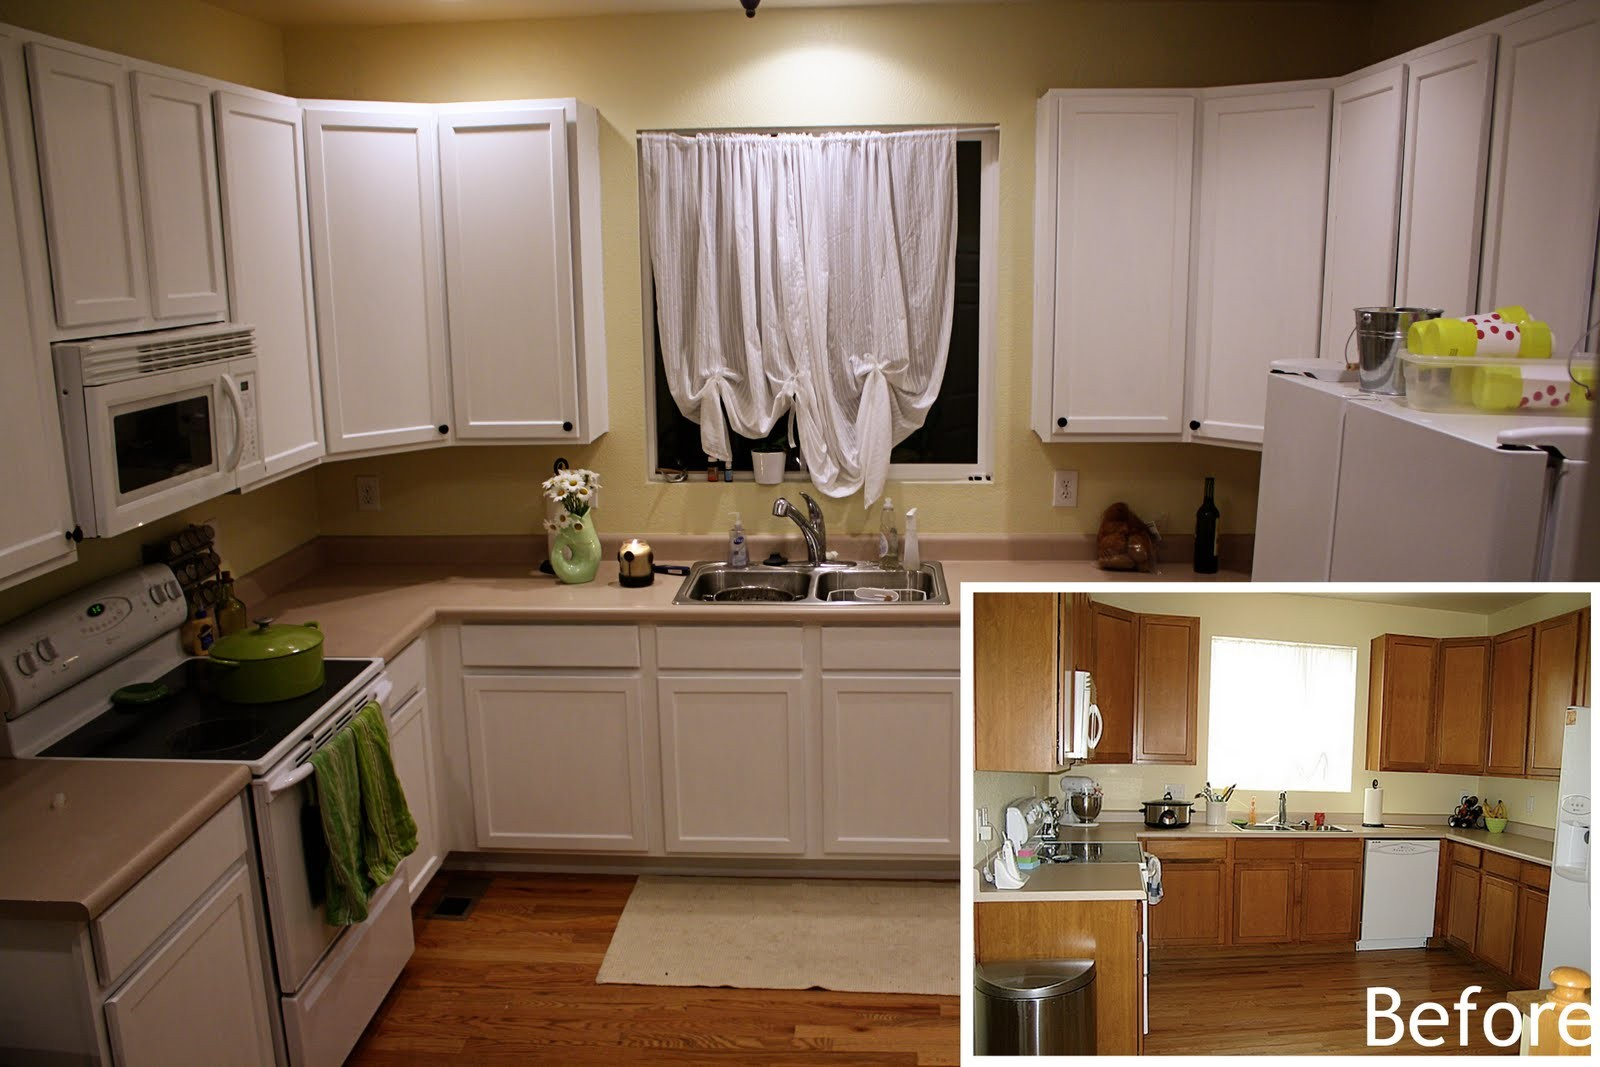 Kitchen Remodel On A Budget before-and-after-kitchen-remodels-on-a-budget | casa-elan middle east